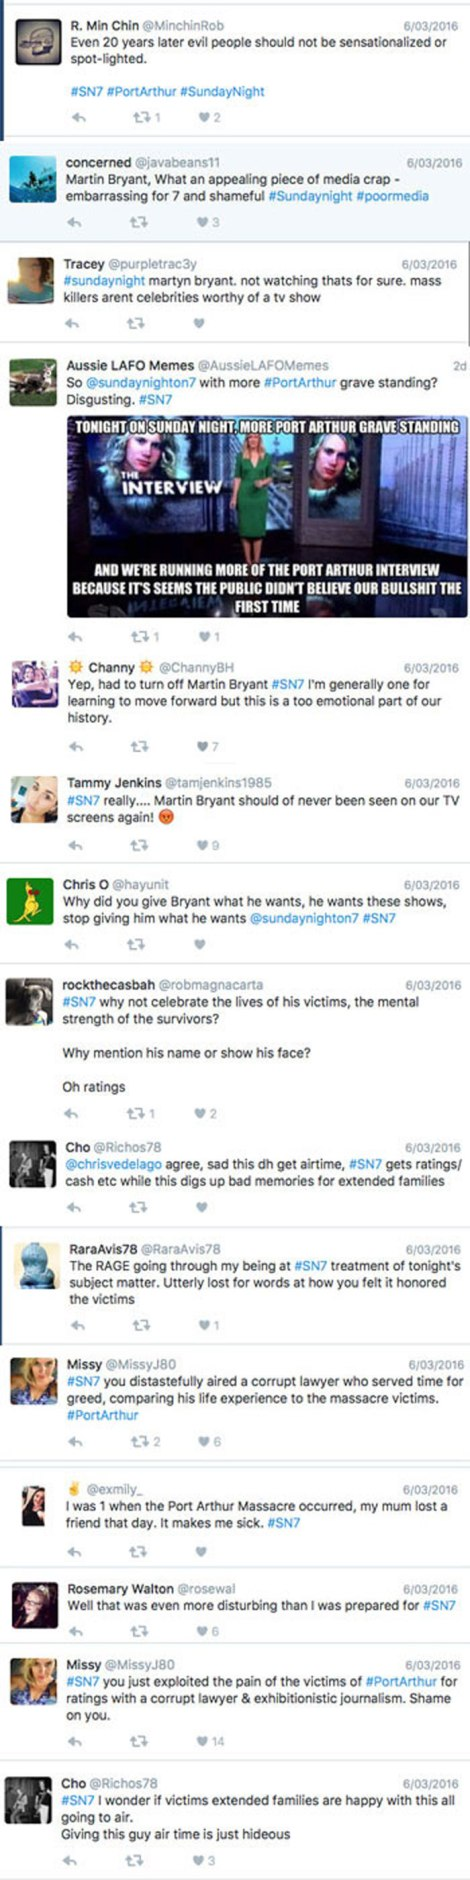 What just some displeased viewers had to say on Twitter about Sunday Night's 'sensational' coverage that focused on the massacre's perpetrator.